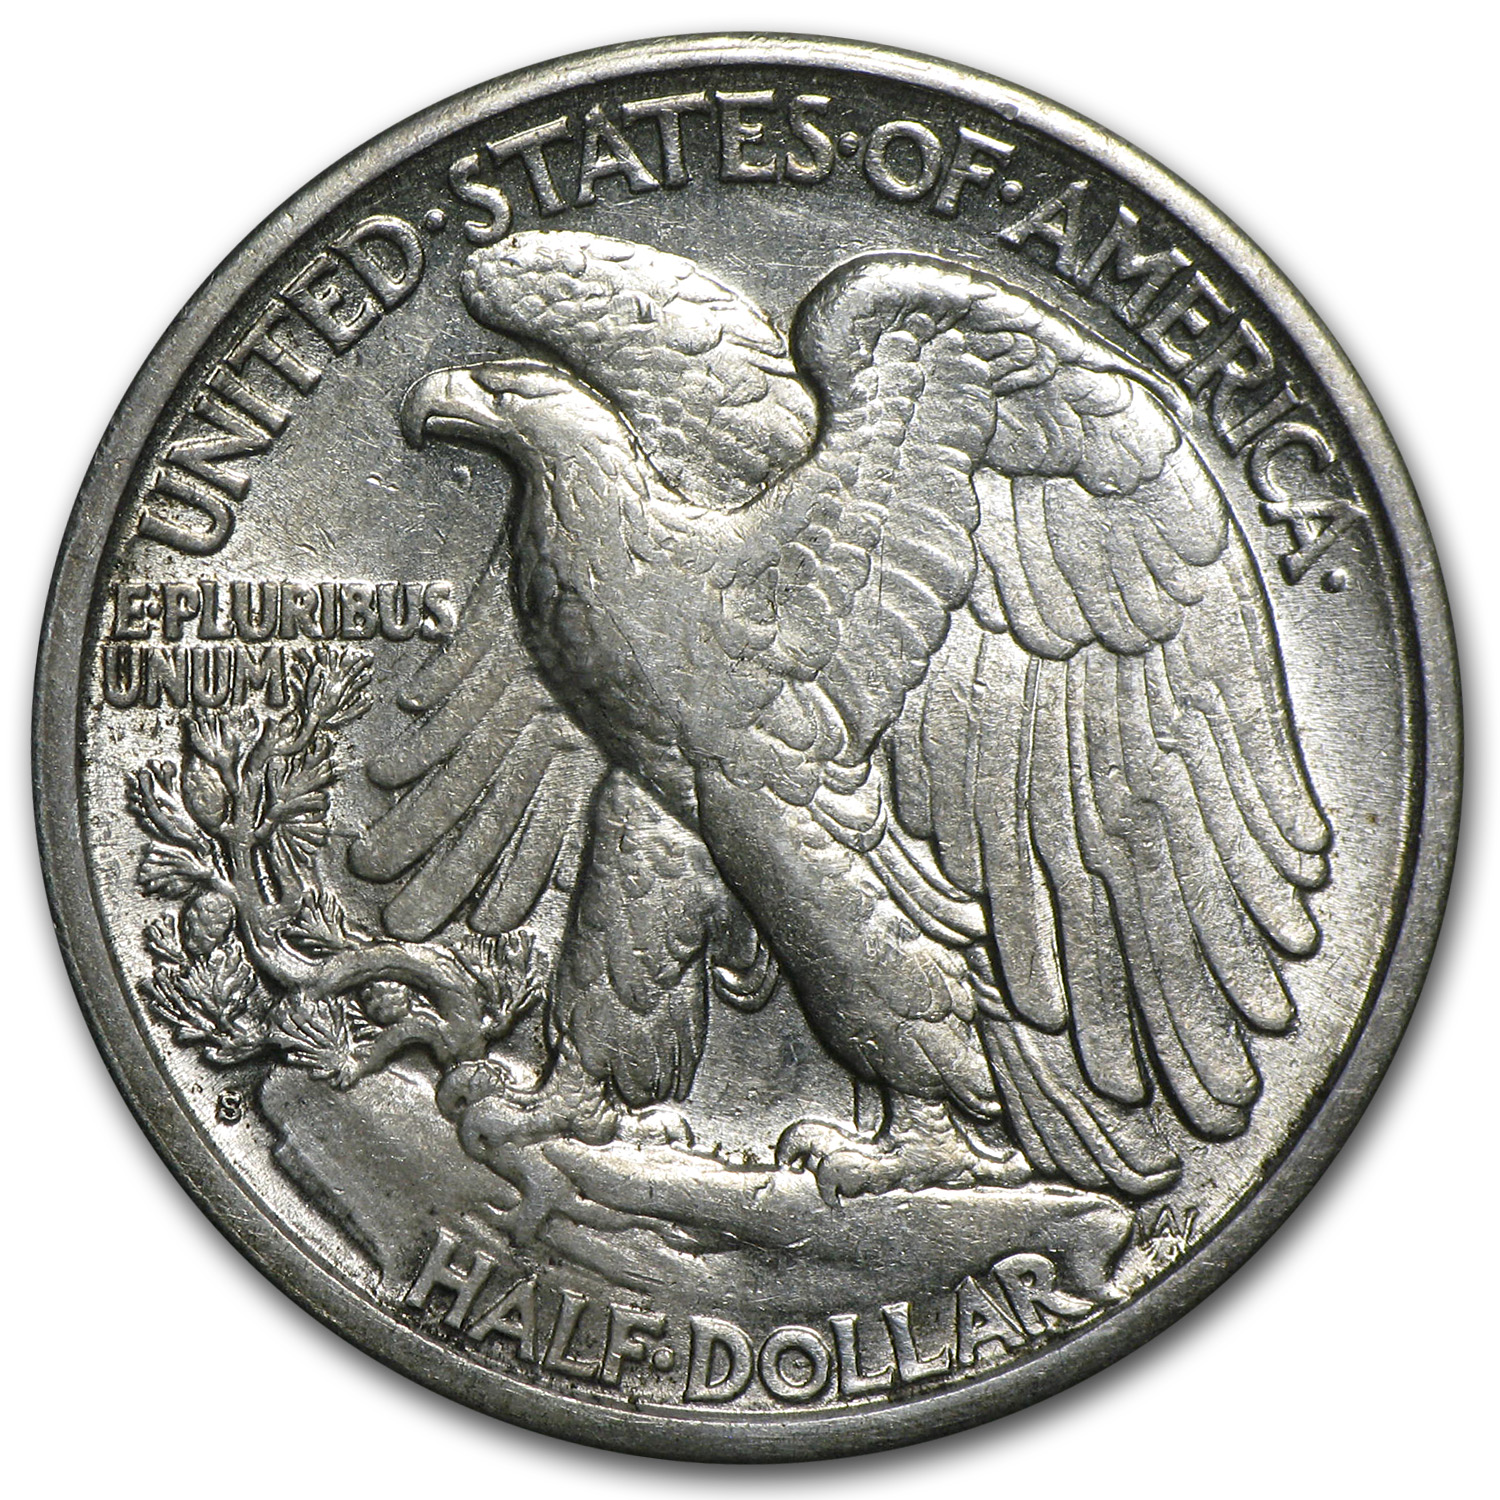 1918-S Walking Liberty Half Dollar - Almost Uncirculated